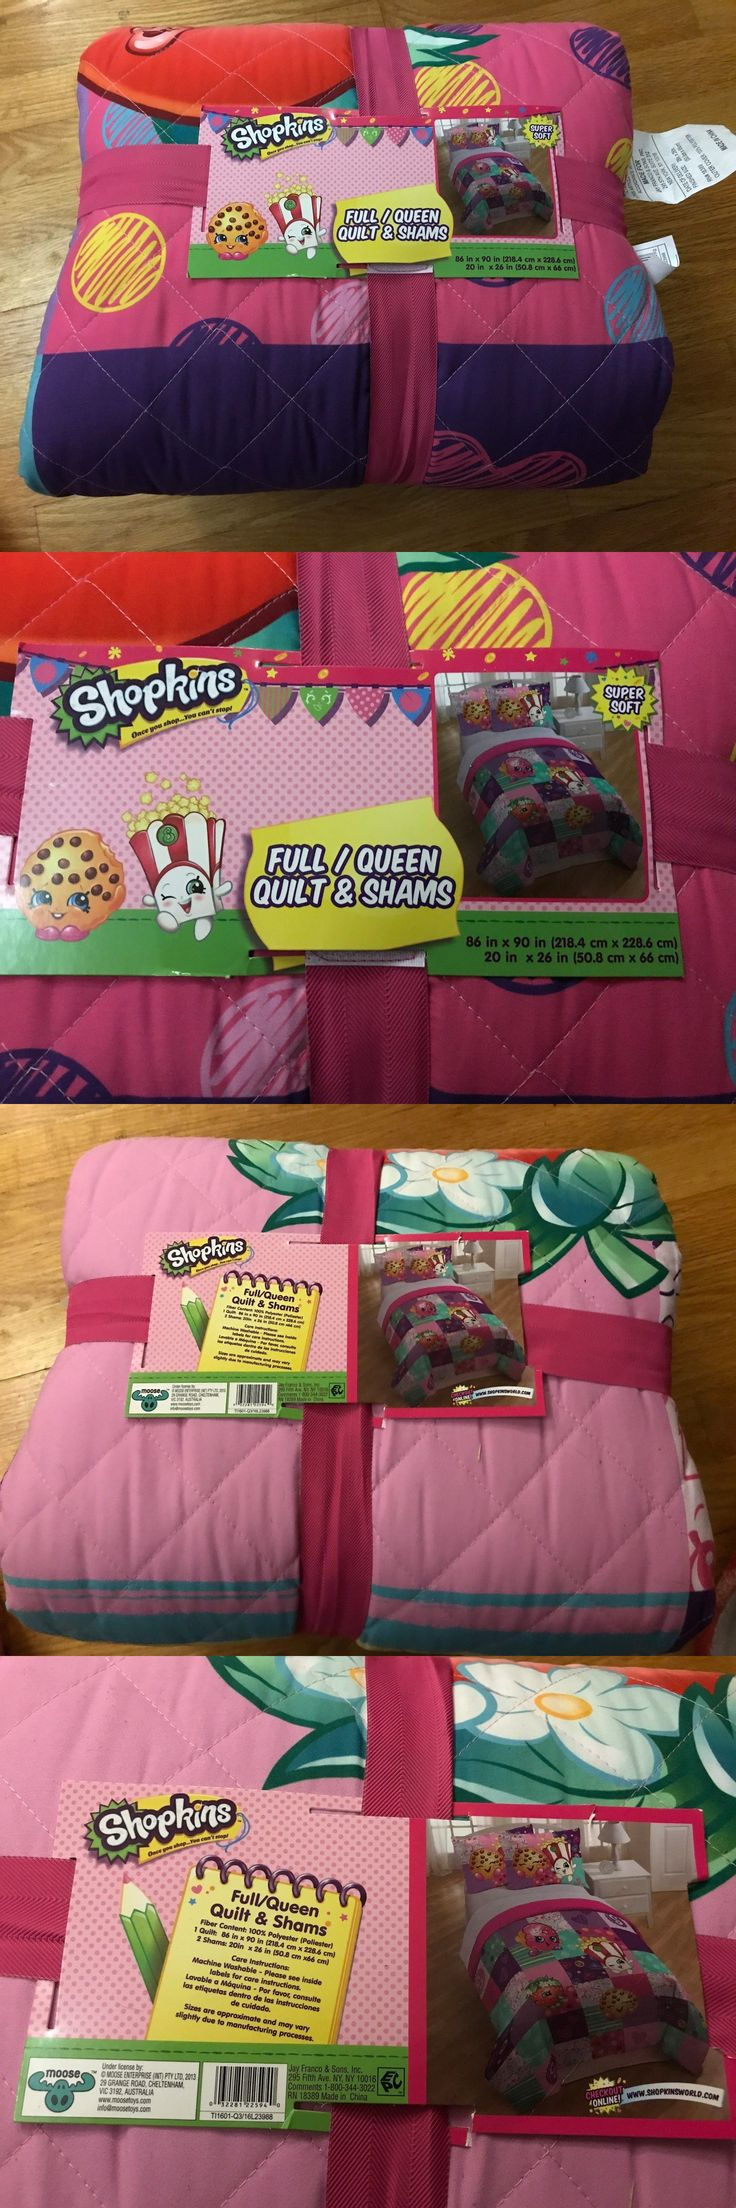 Quilts 66730: Shopkins Full Queen Quilt And Sham, 100% Polyester, Super Soft, New With Tags -> BUY IT NOW ONLY: $49.99 on eBay!